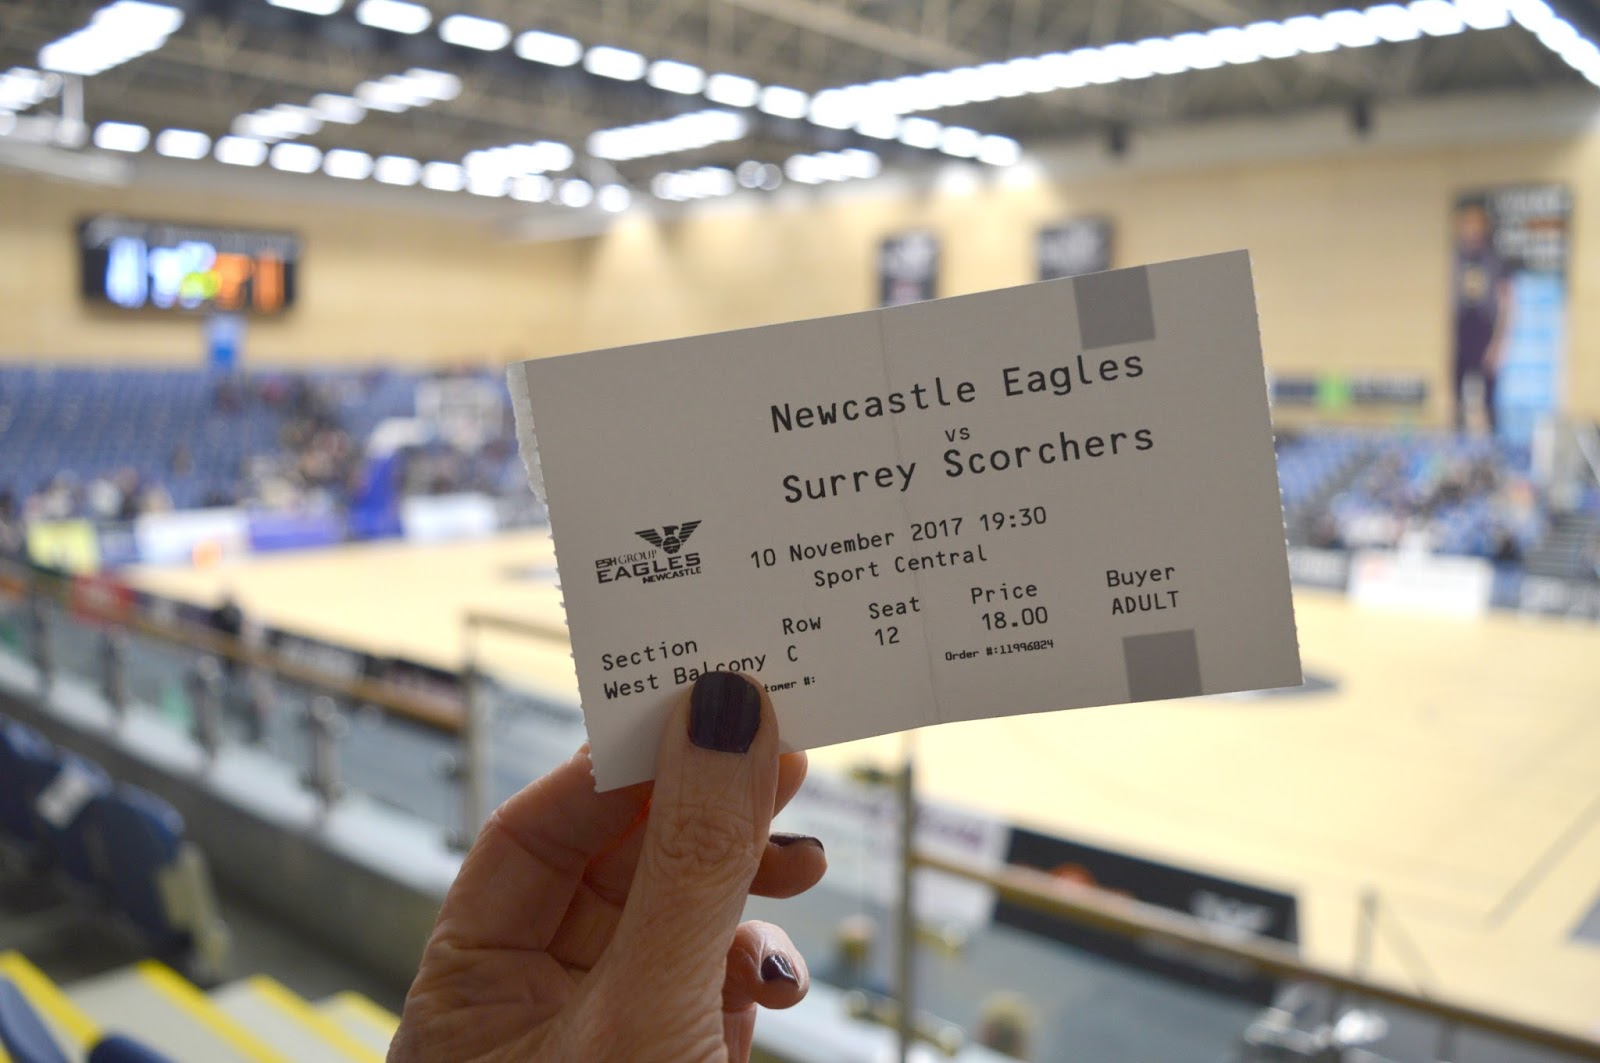 Newcastle Eagles Basketball Game - Ticket